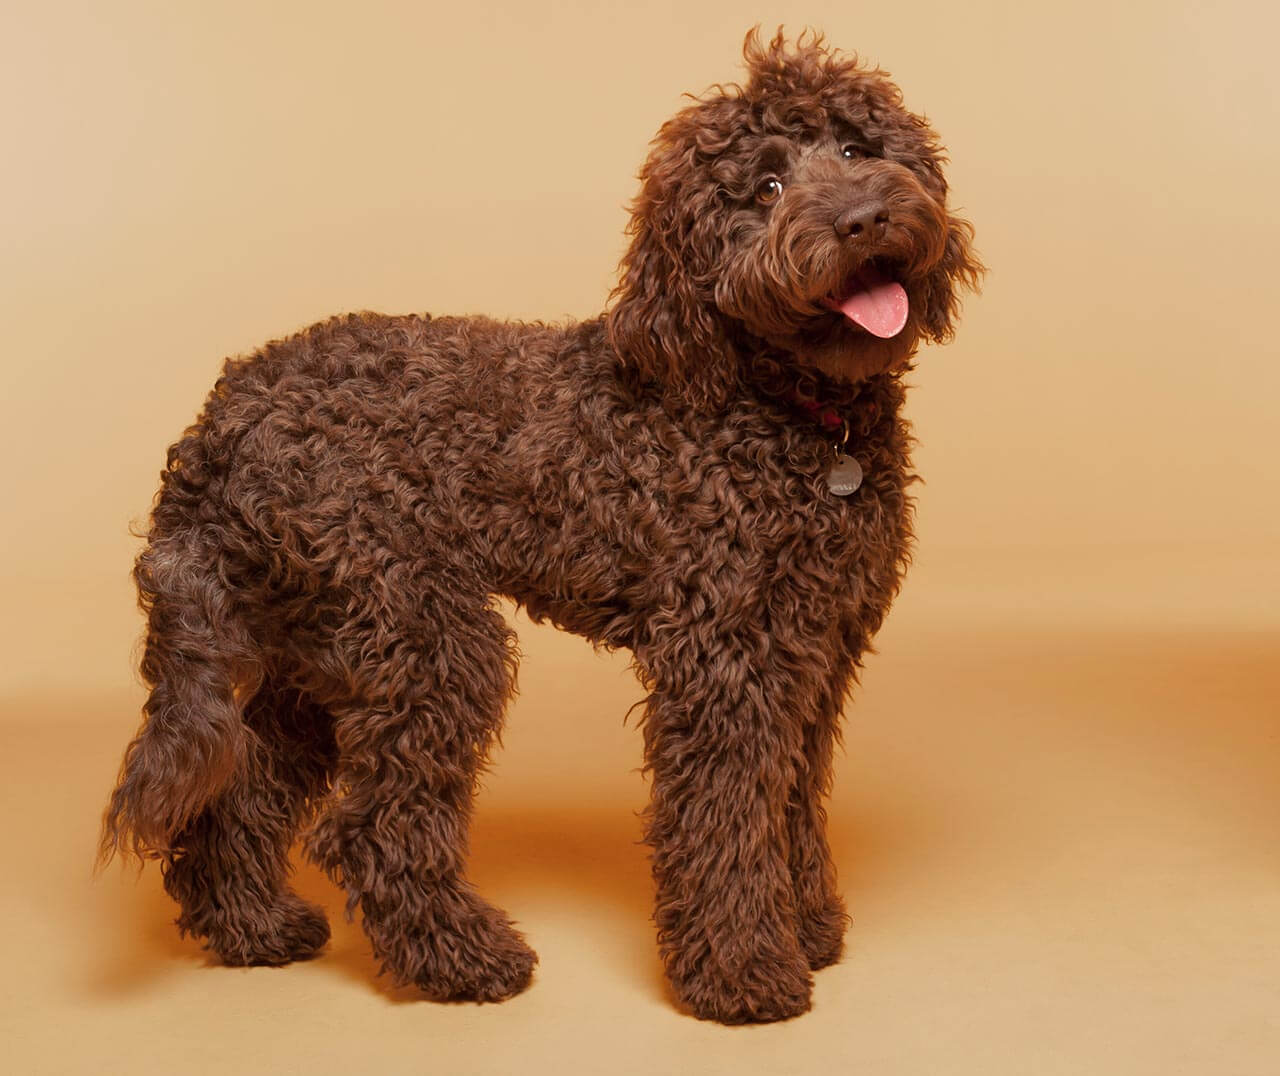 Hypoallergenic Dogs That Are Family Friendly